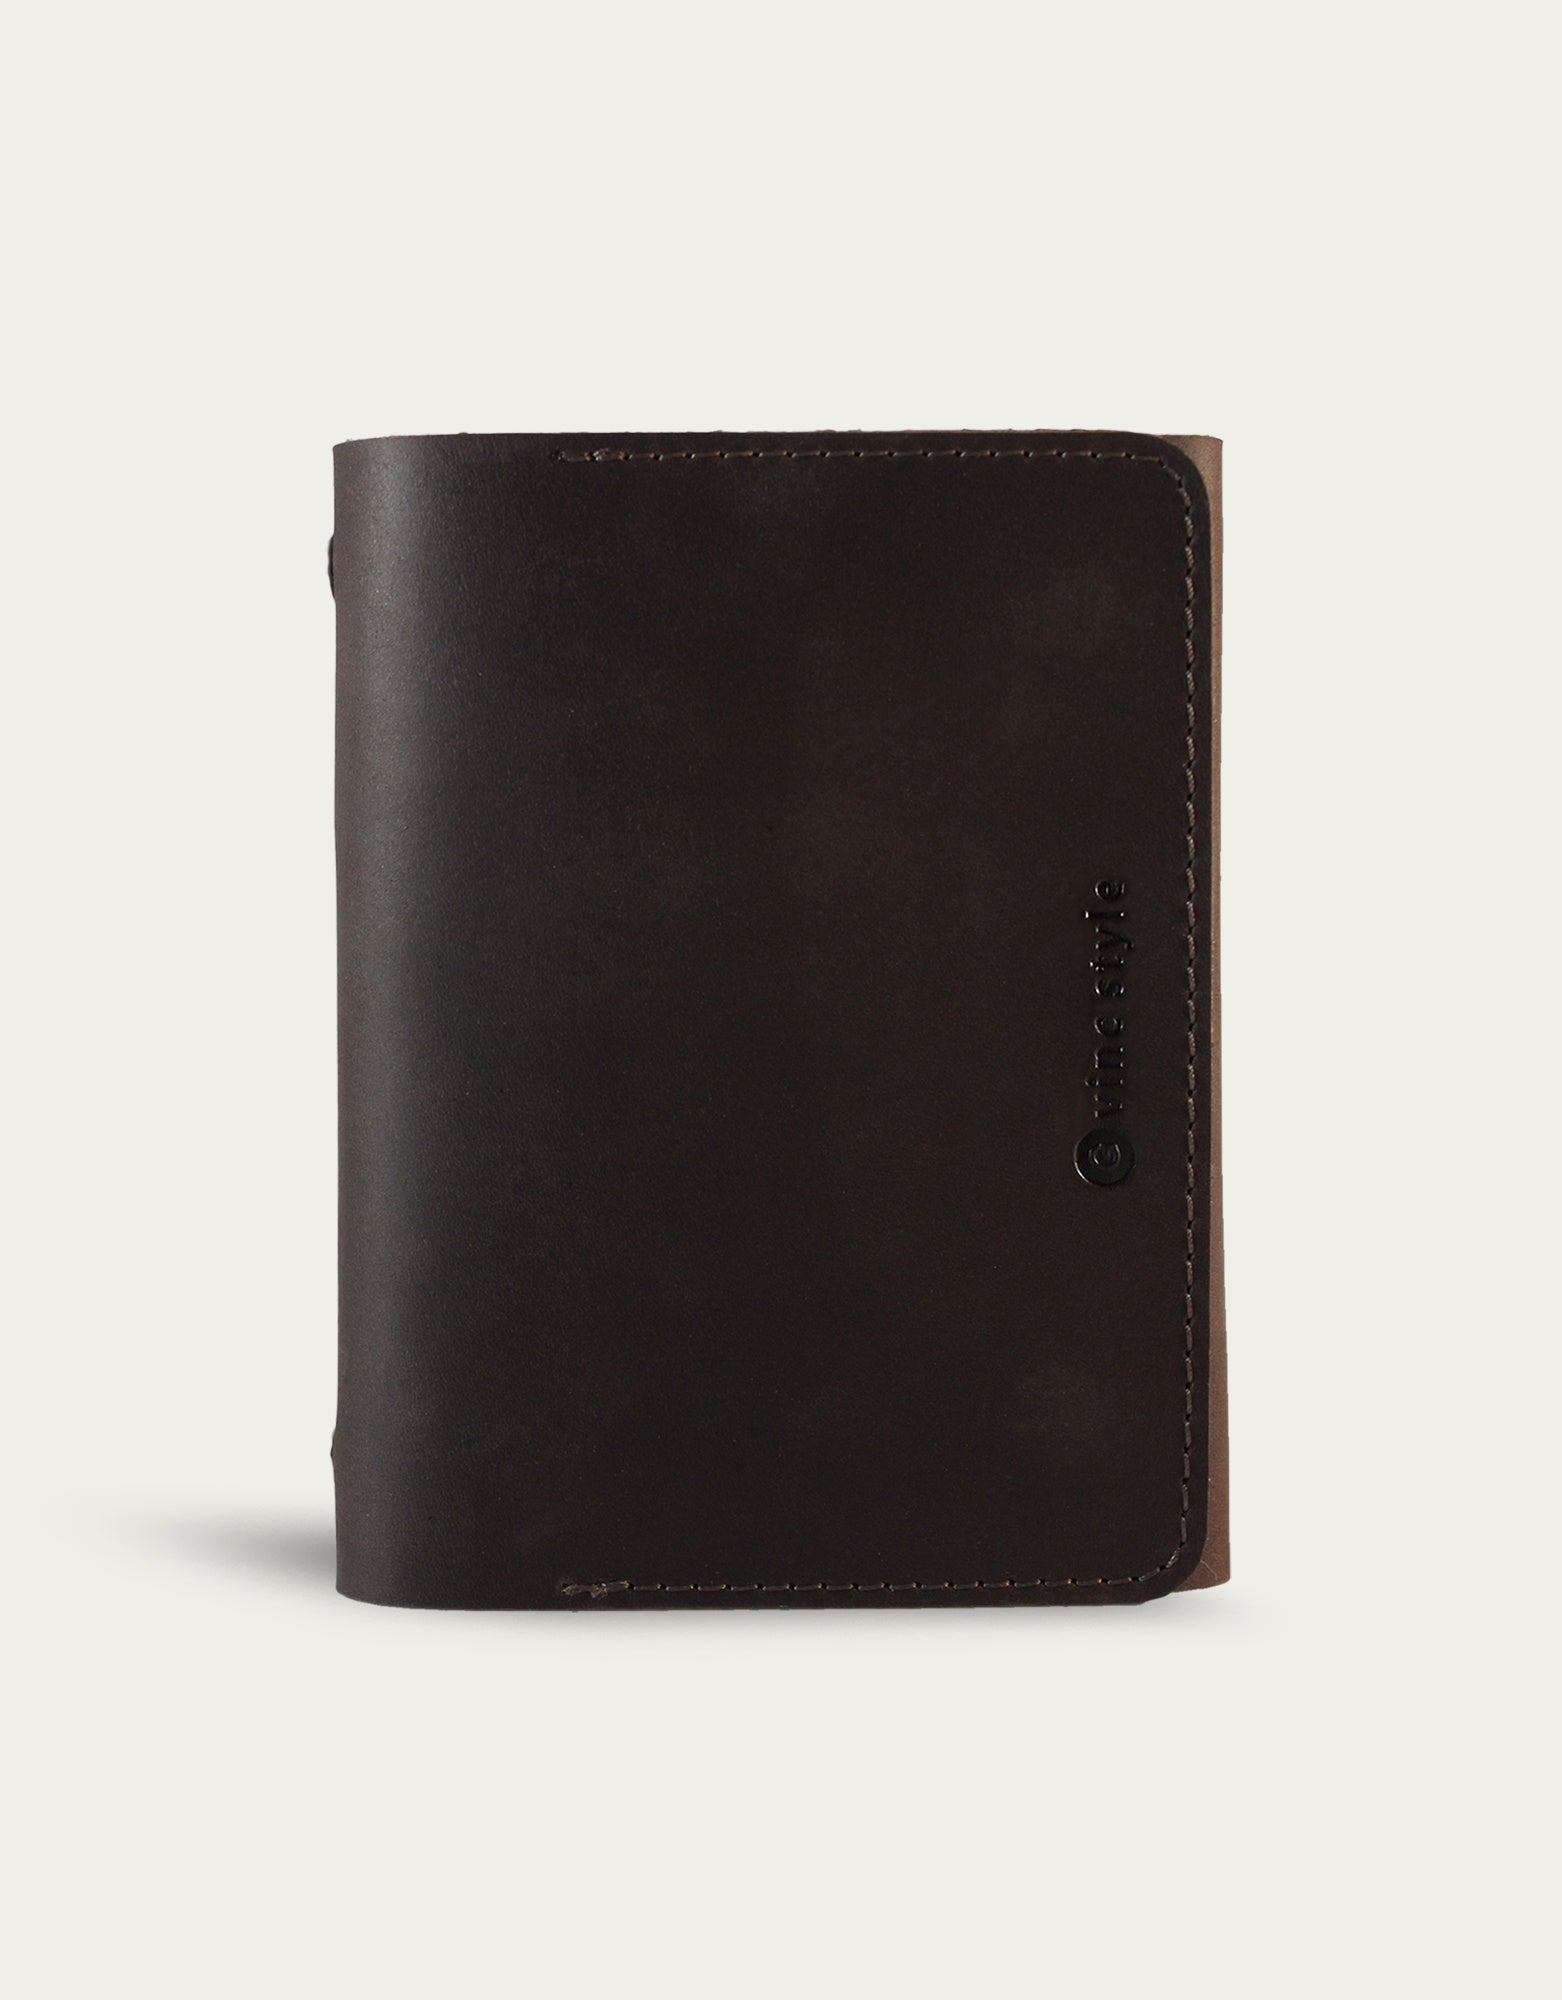 Tortoni Organizer (S) - Dark Brown